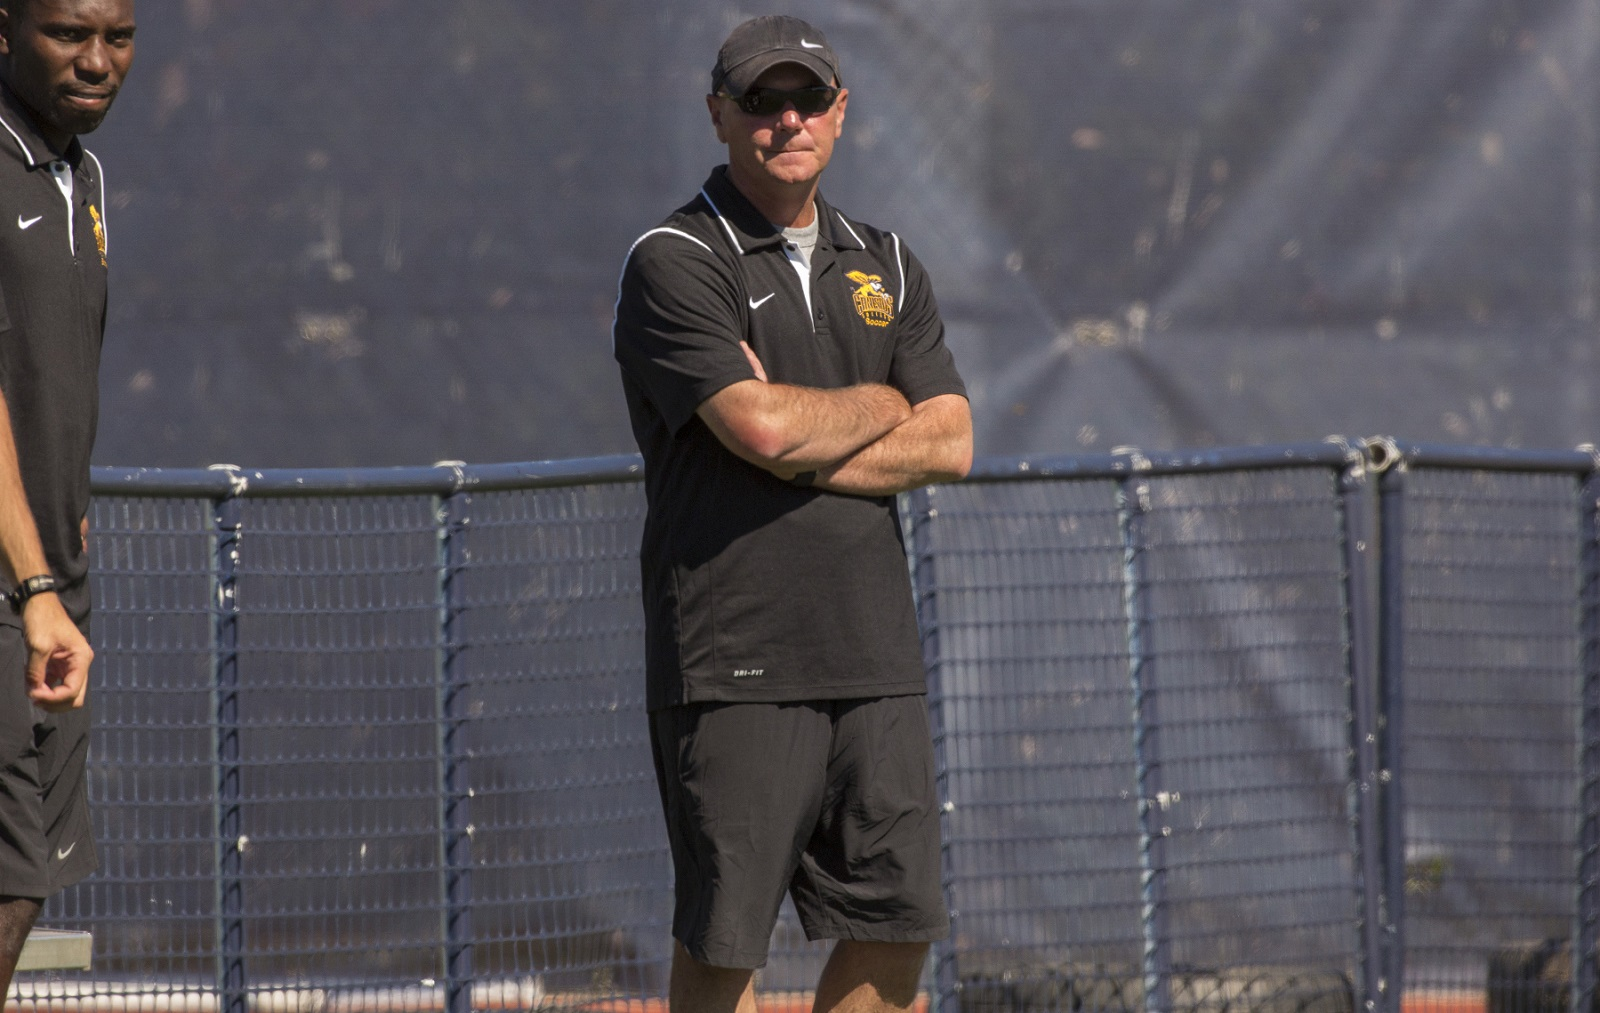 McGrane spent 1980 to 1985 as a member of the Leicester City FC academy. He has coached locally for both Niagara and Canisius. (Canisius Athletics)